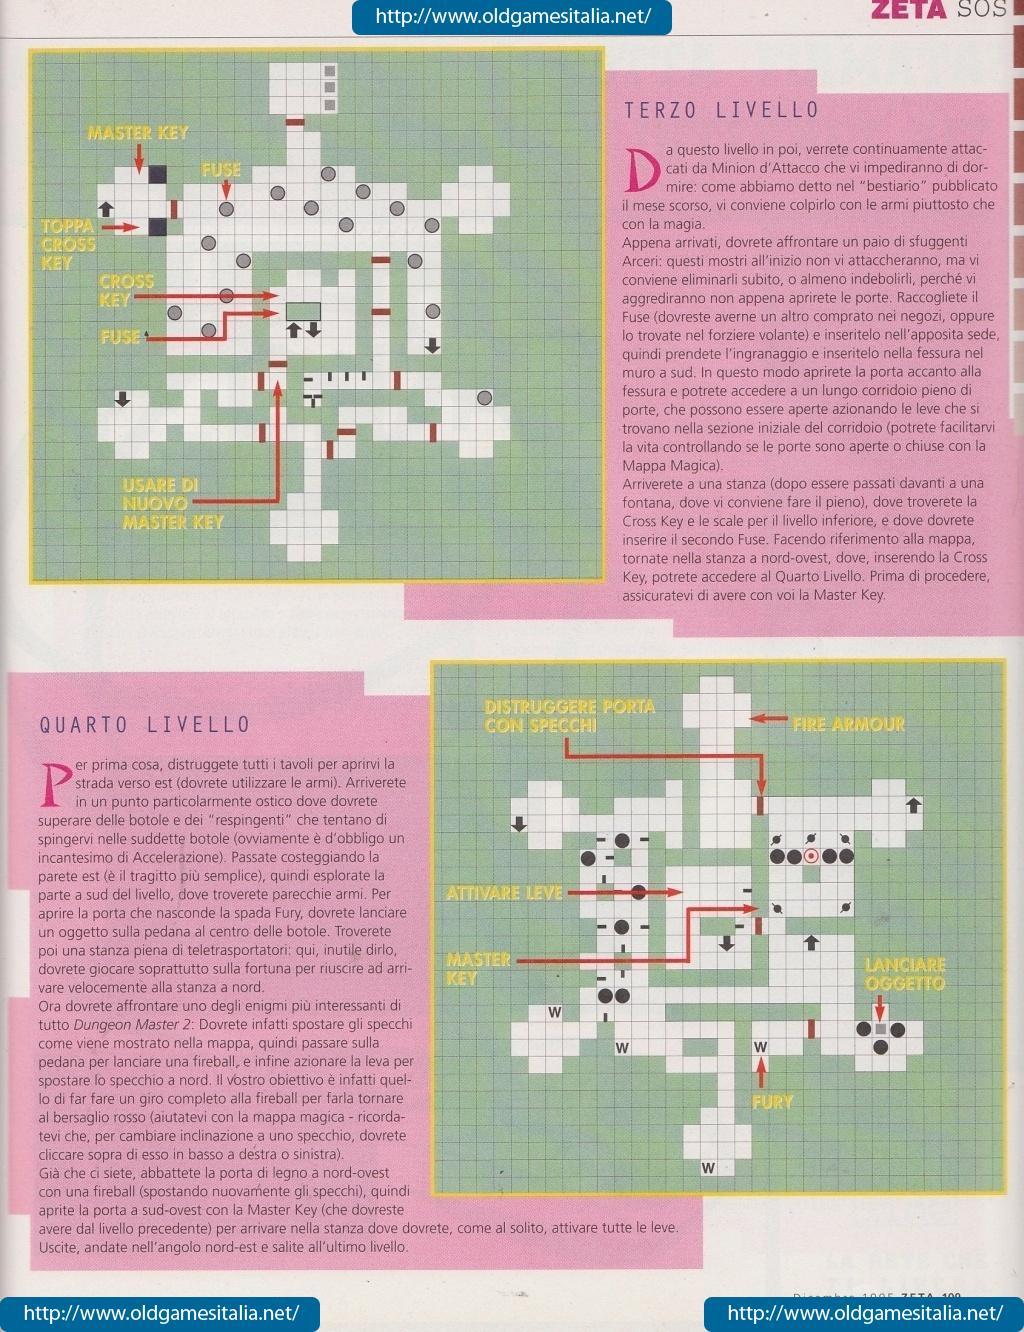 Dungeon Master II Guide published in Italian magazine 'Zeta', Issue #10 December 1995, Page 109